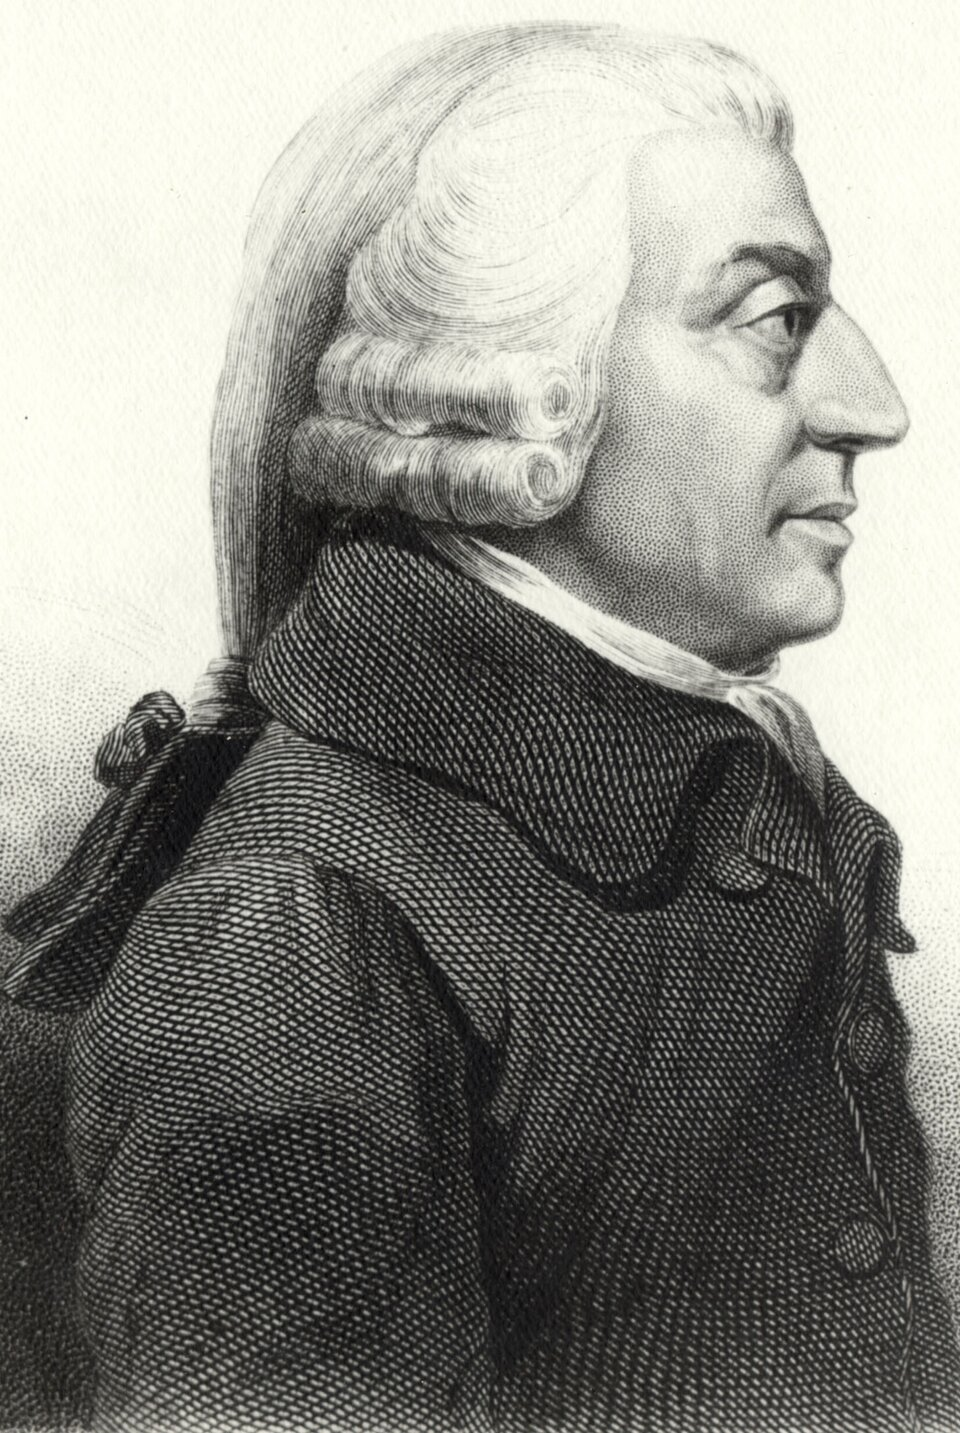 Adam Smith Źródło: James Tassie, Adam Smith, 1787, domena publiczna.